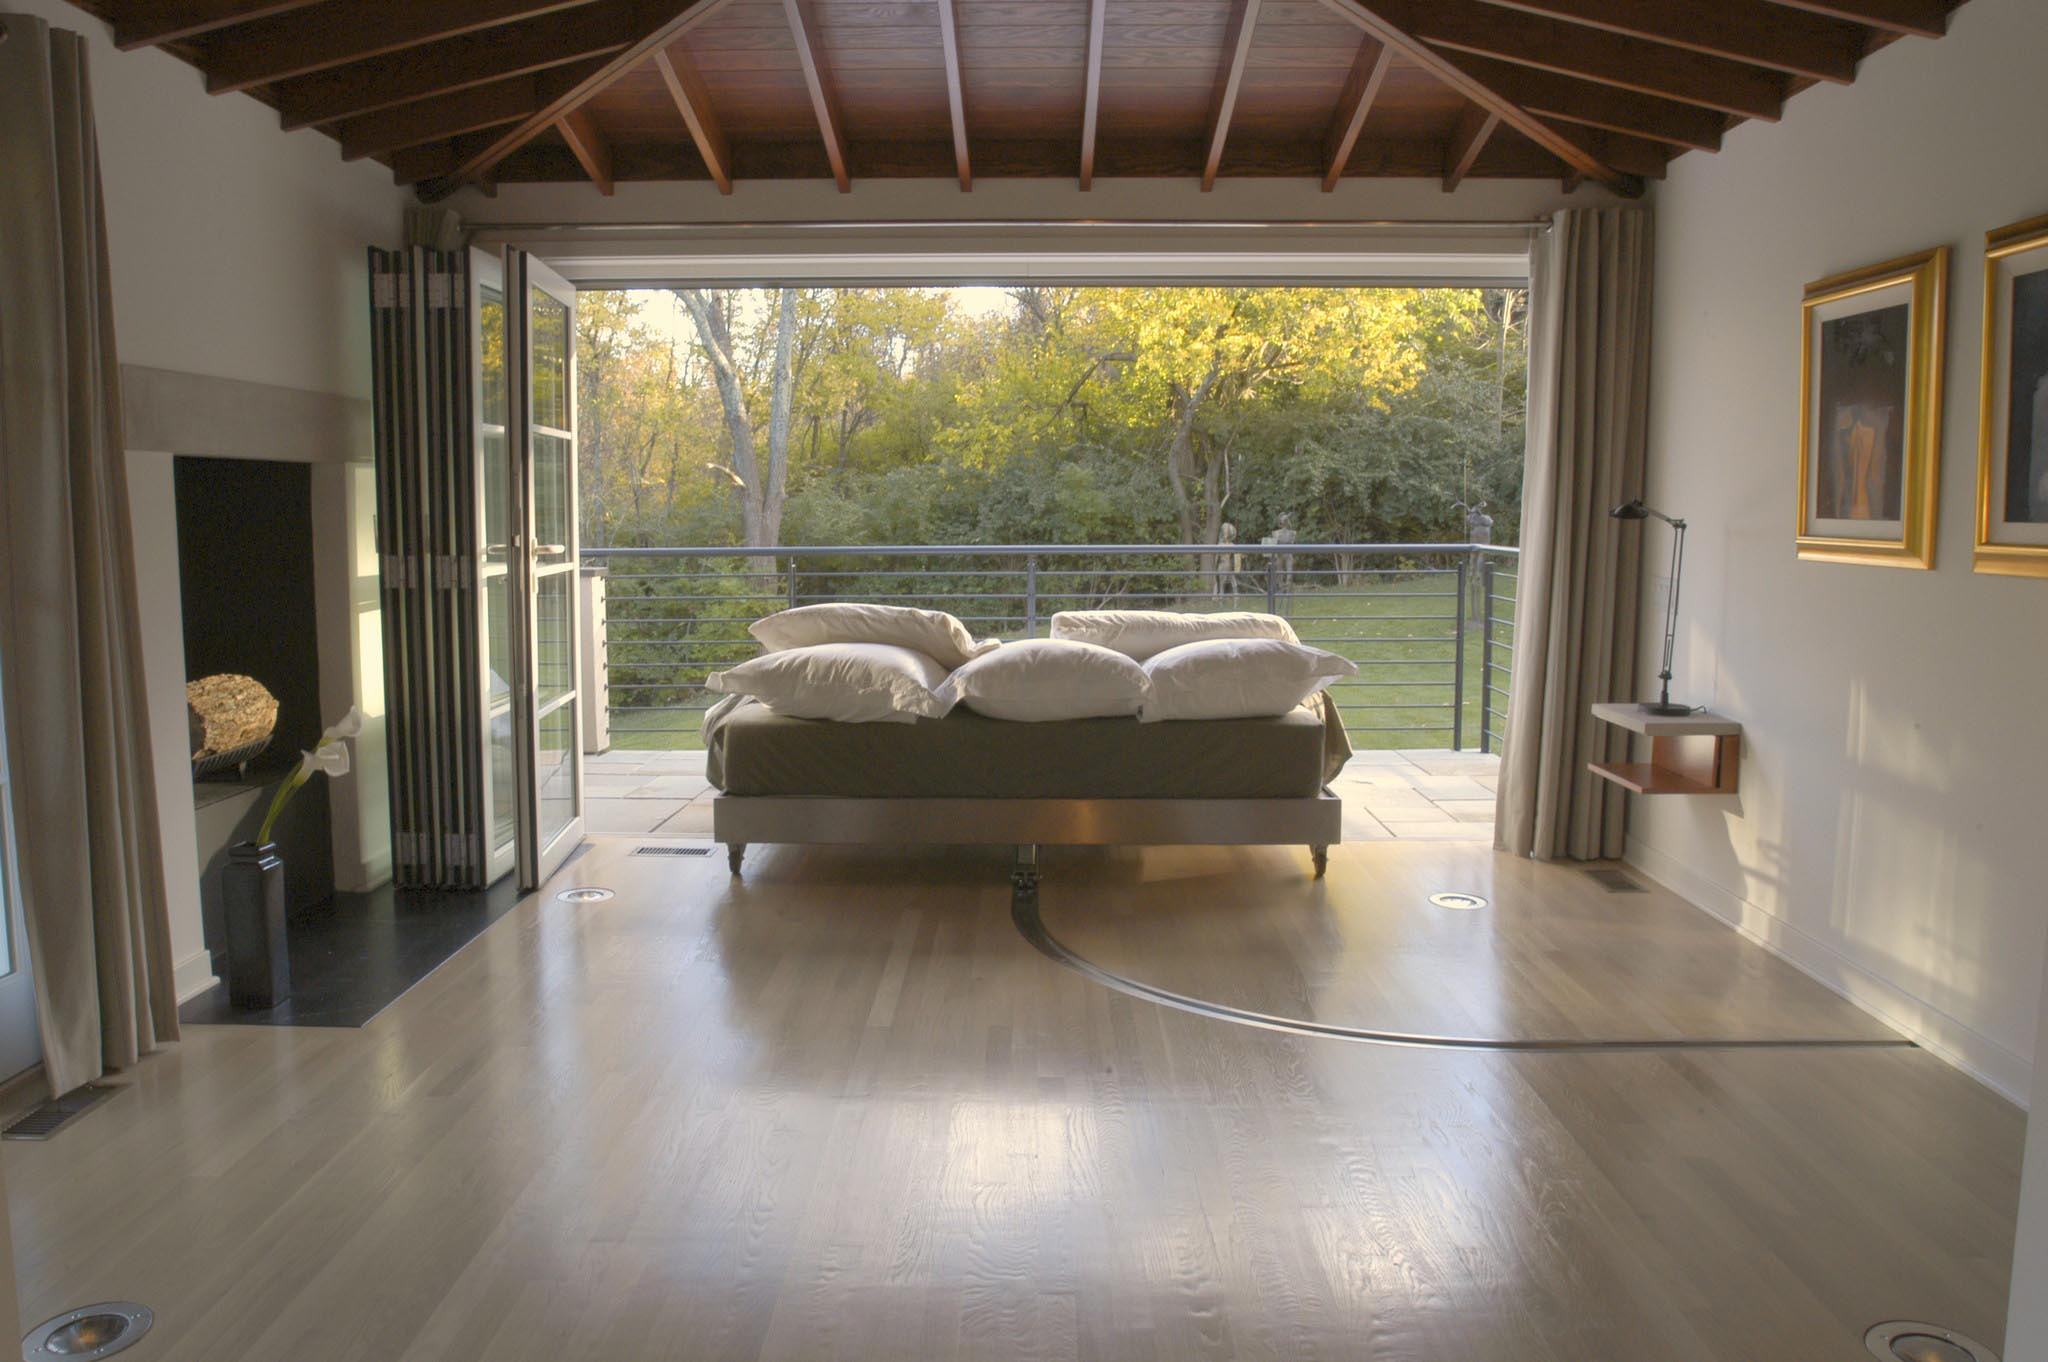 WA67_residential_Sleeping_Porch_OH_2